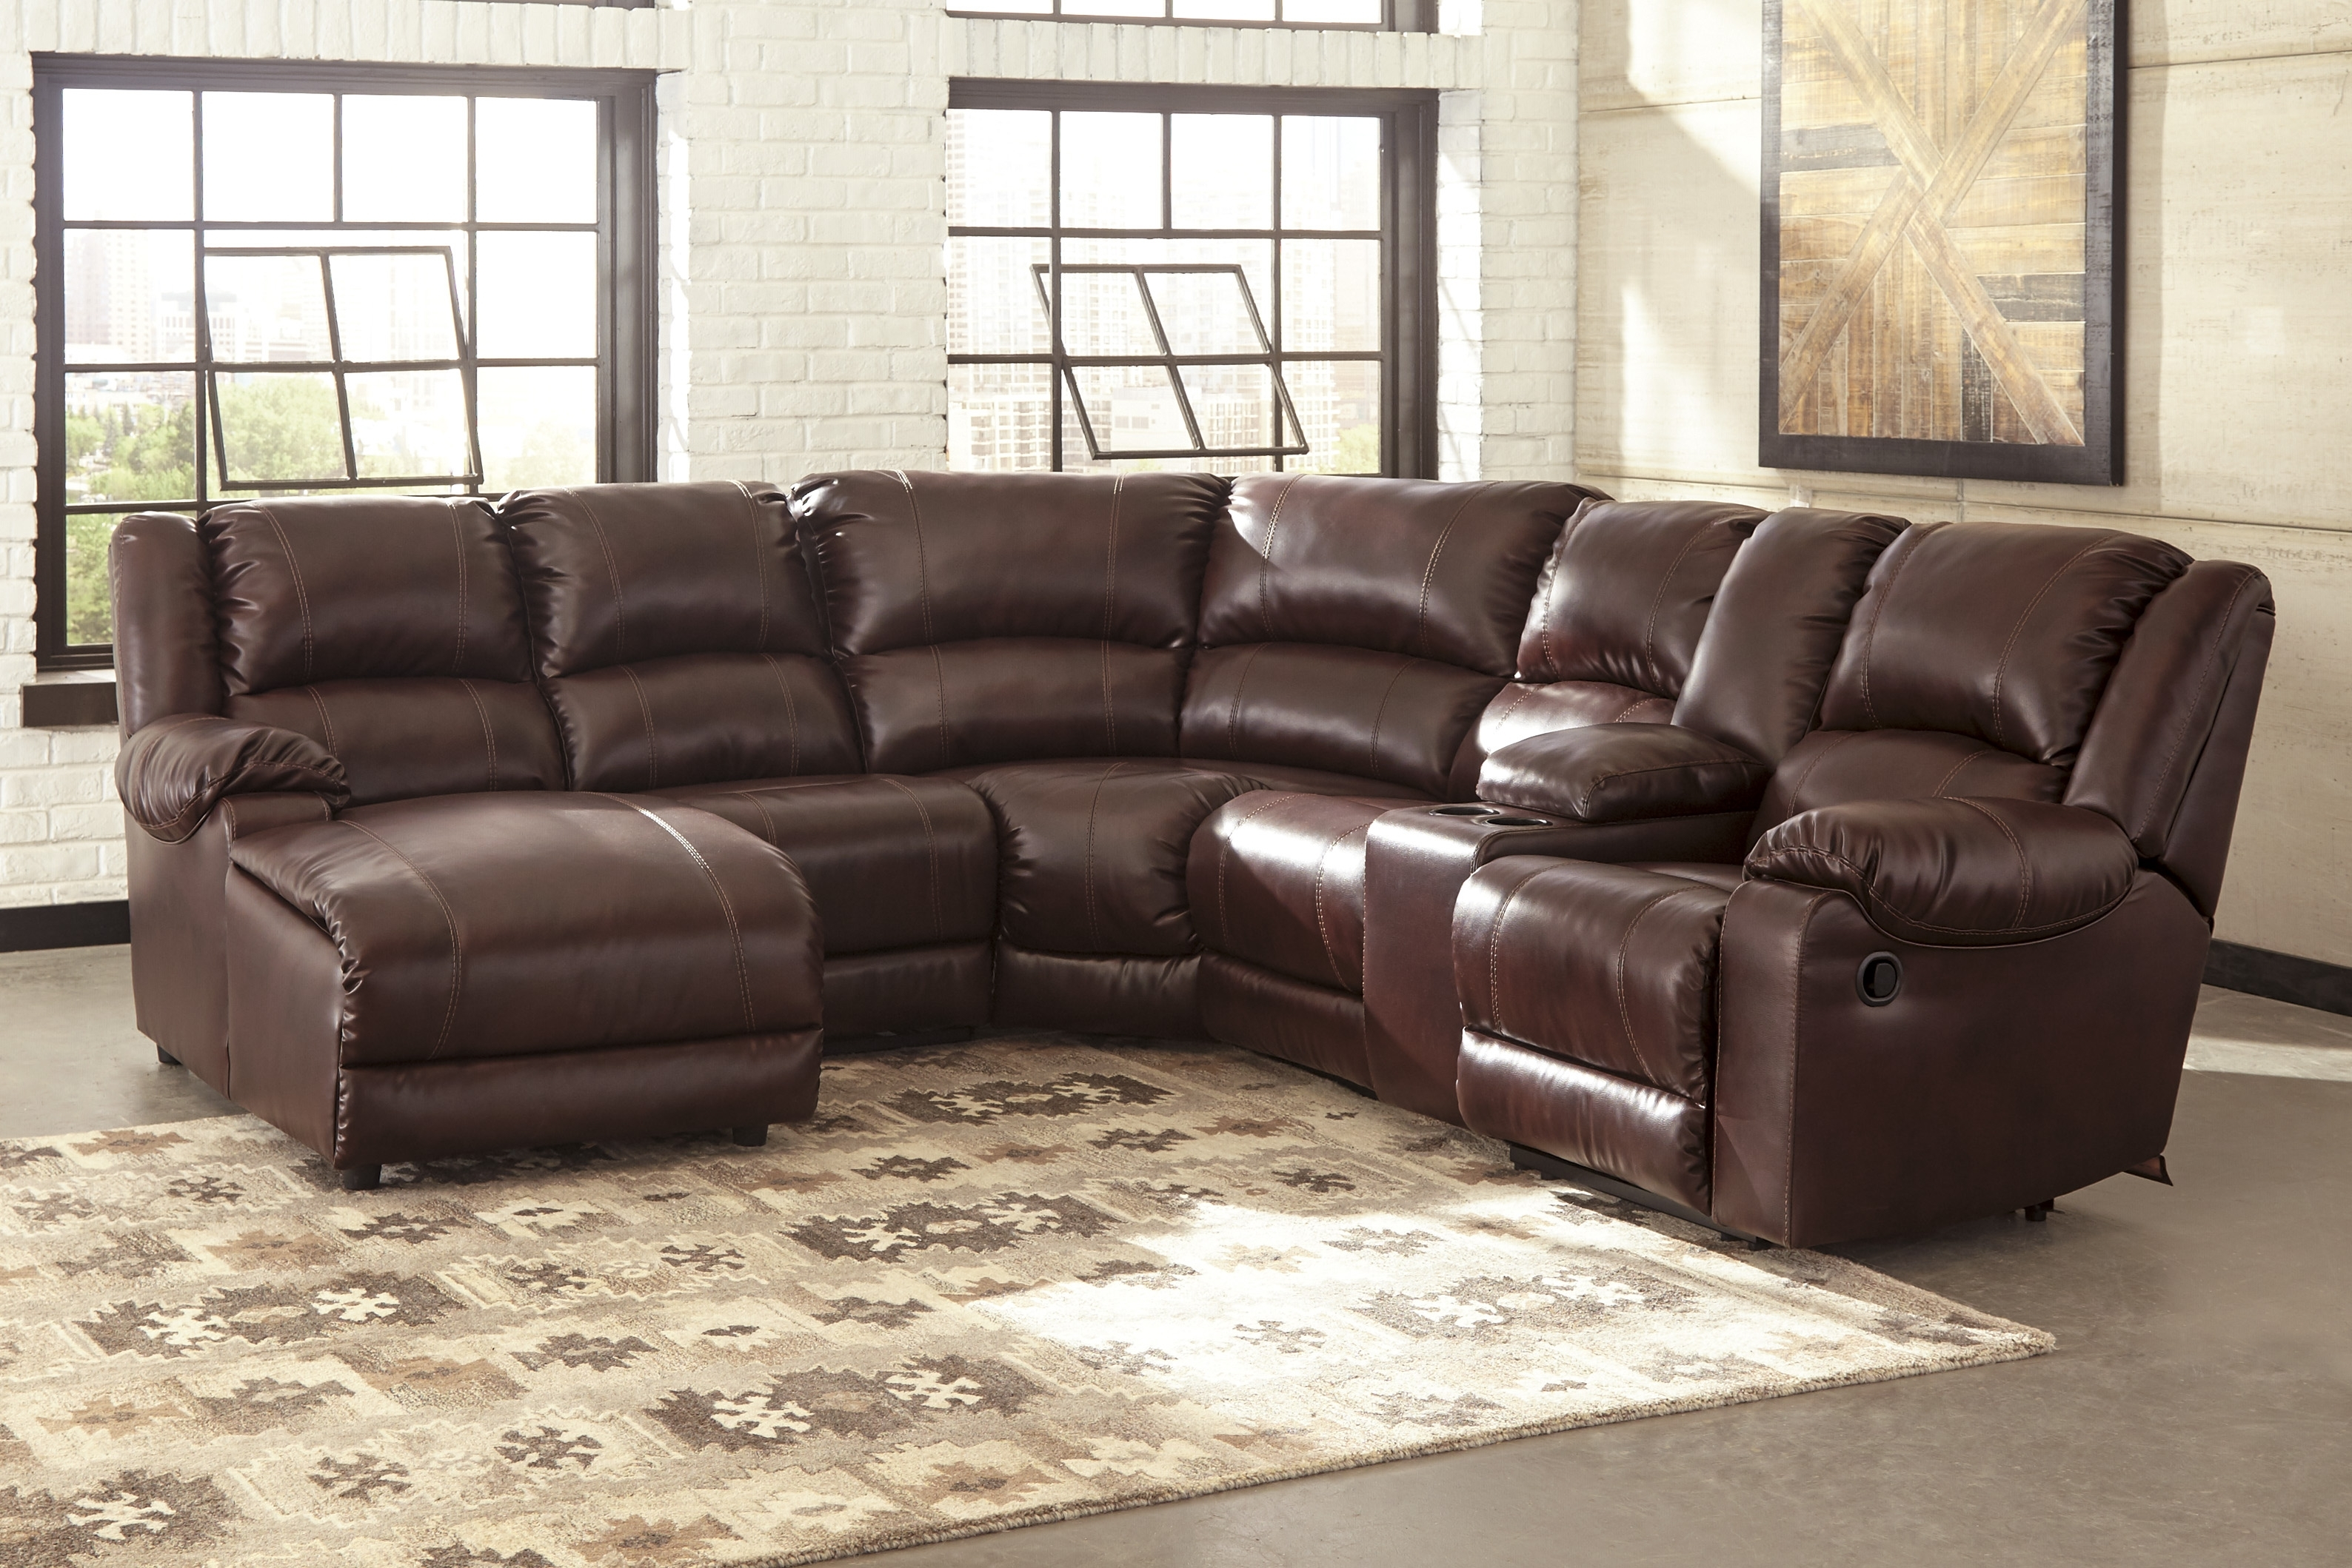 Favorite Reclining Leather Sectionals Regarding Evansville In Sectional Sofas (View 5 of 15)